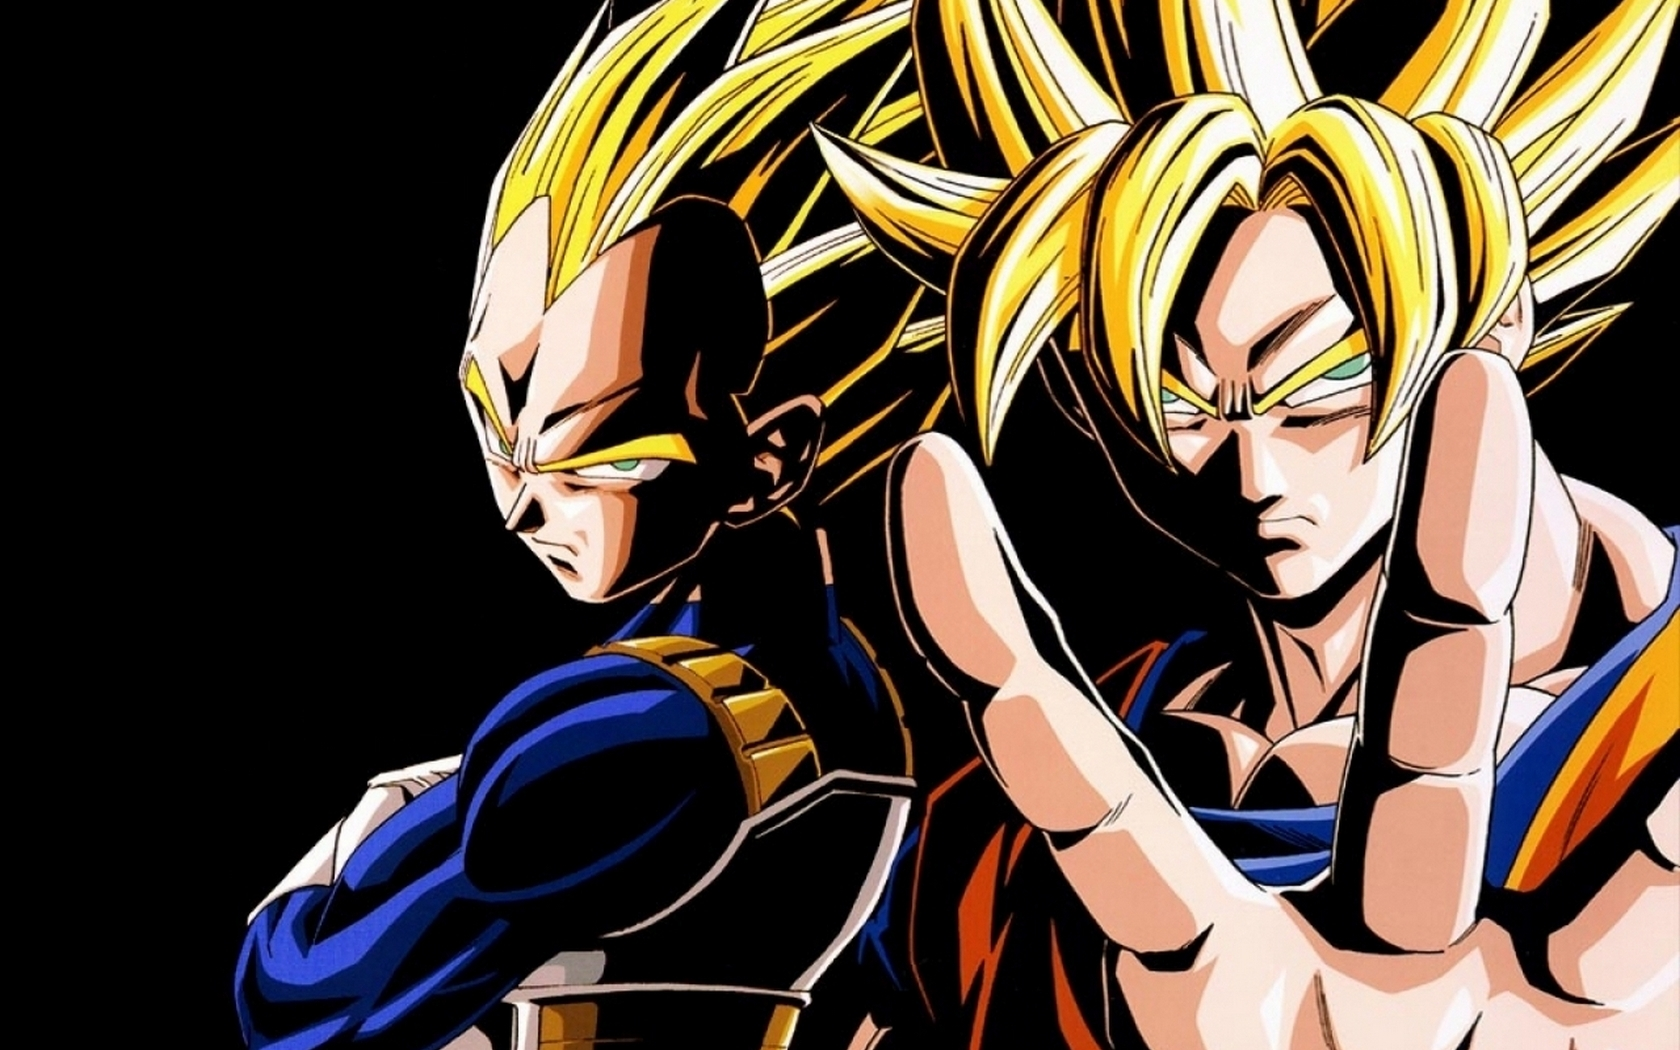 Fondos de dragon ball z goku wallpapers para descargar gratis - Photo dragon ball z ...